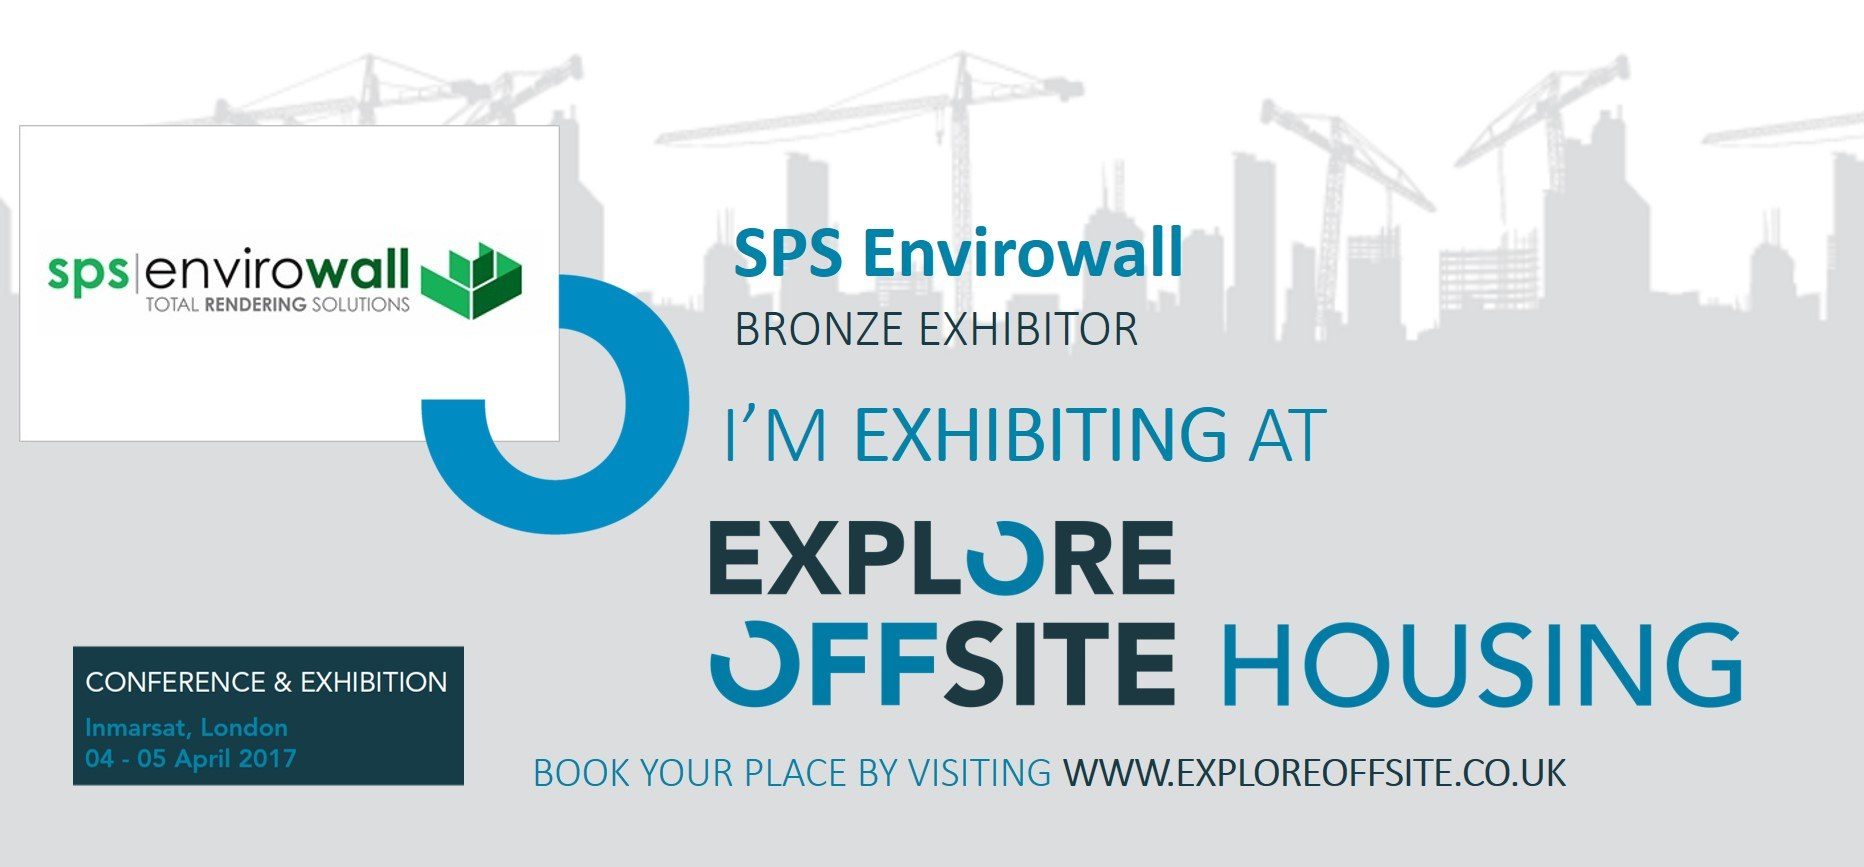 Explore Offsite Housing Branded